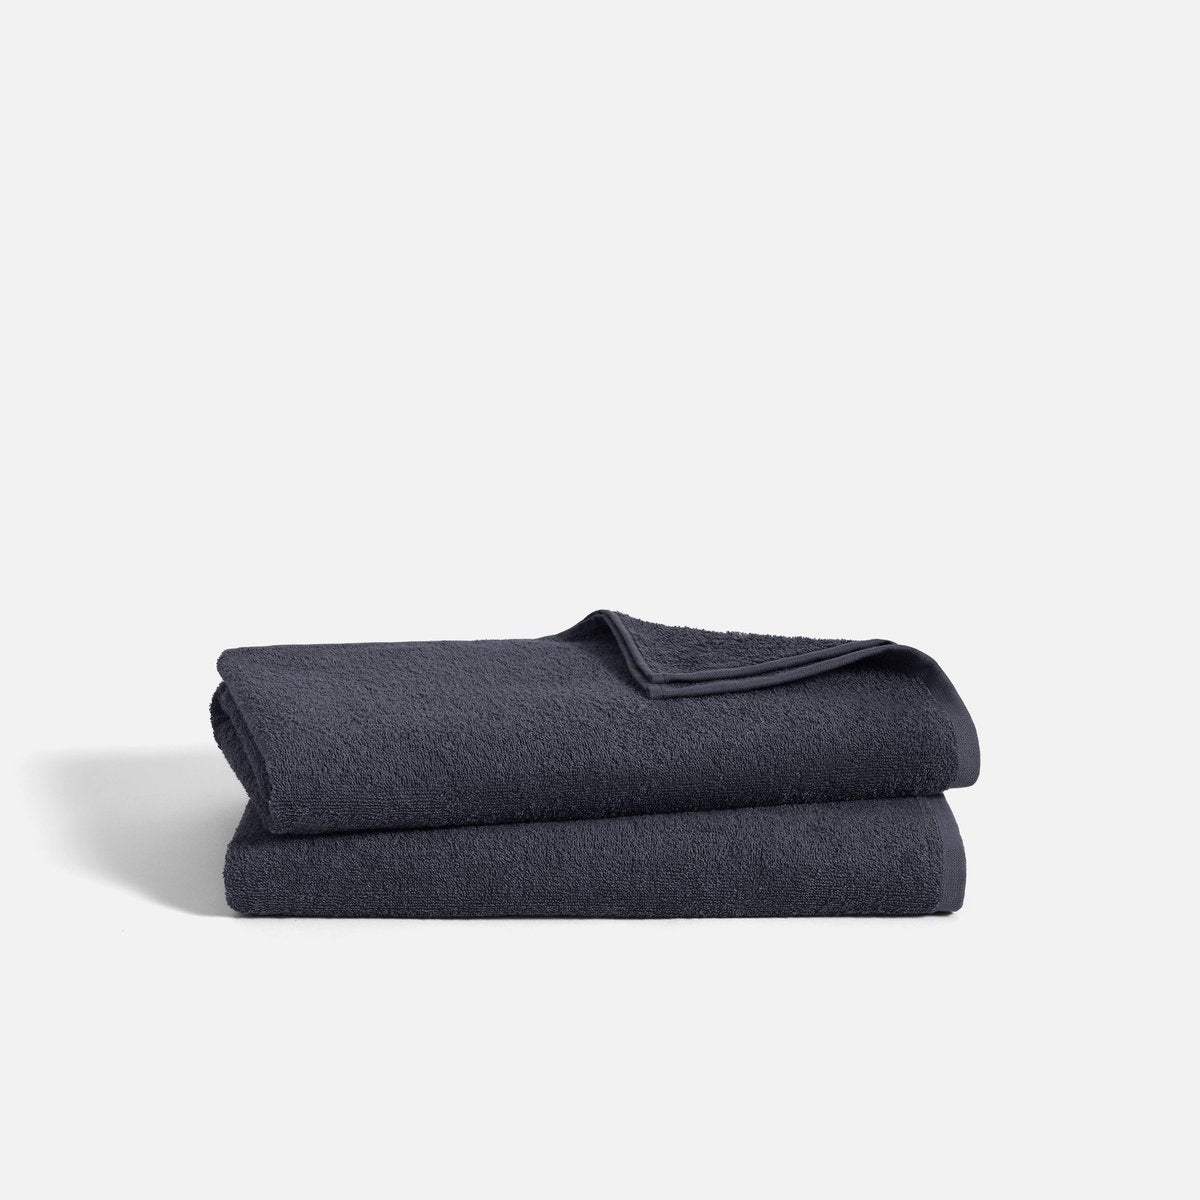 Stack of Ultralight Bath Towels in Graphite